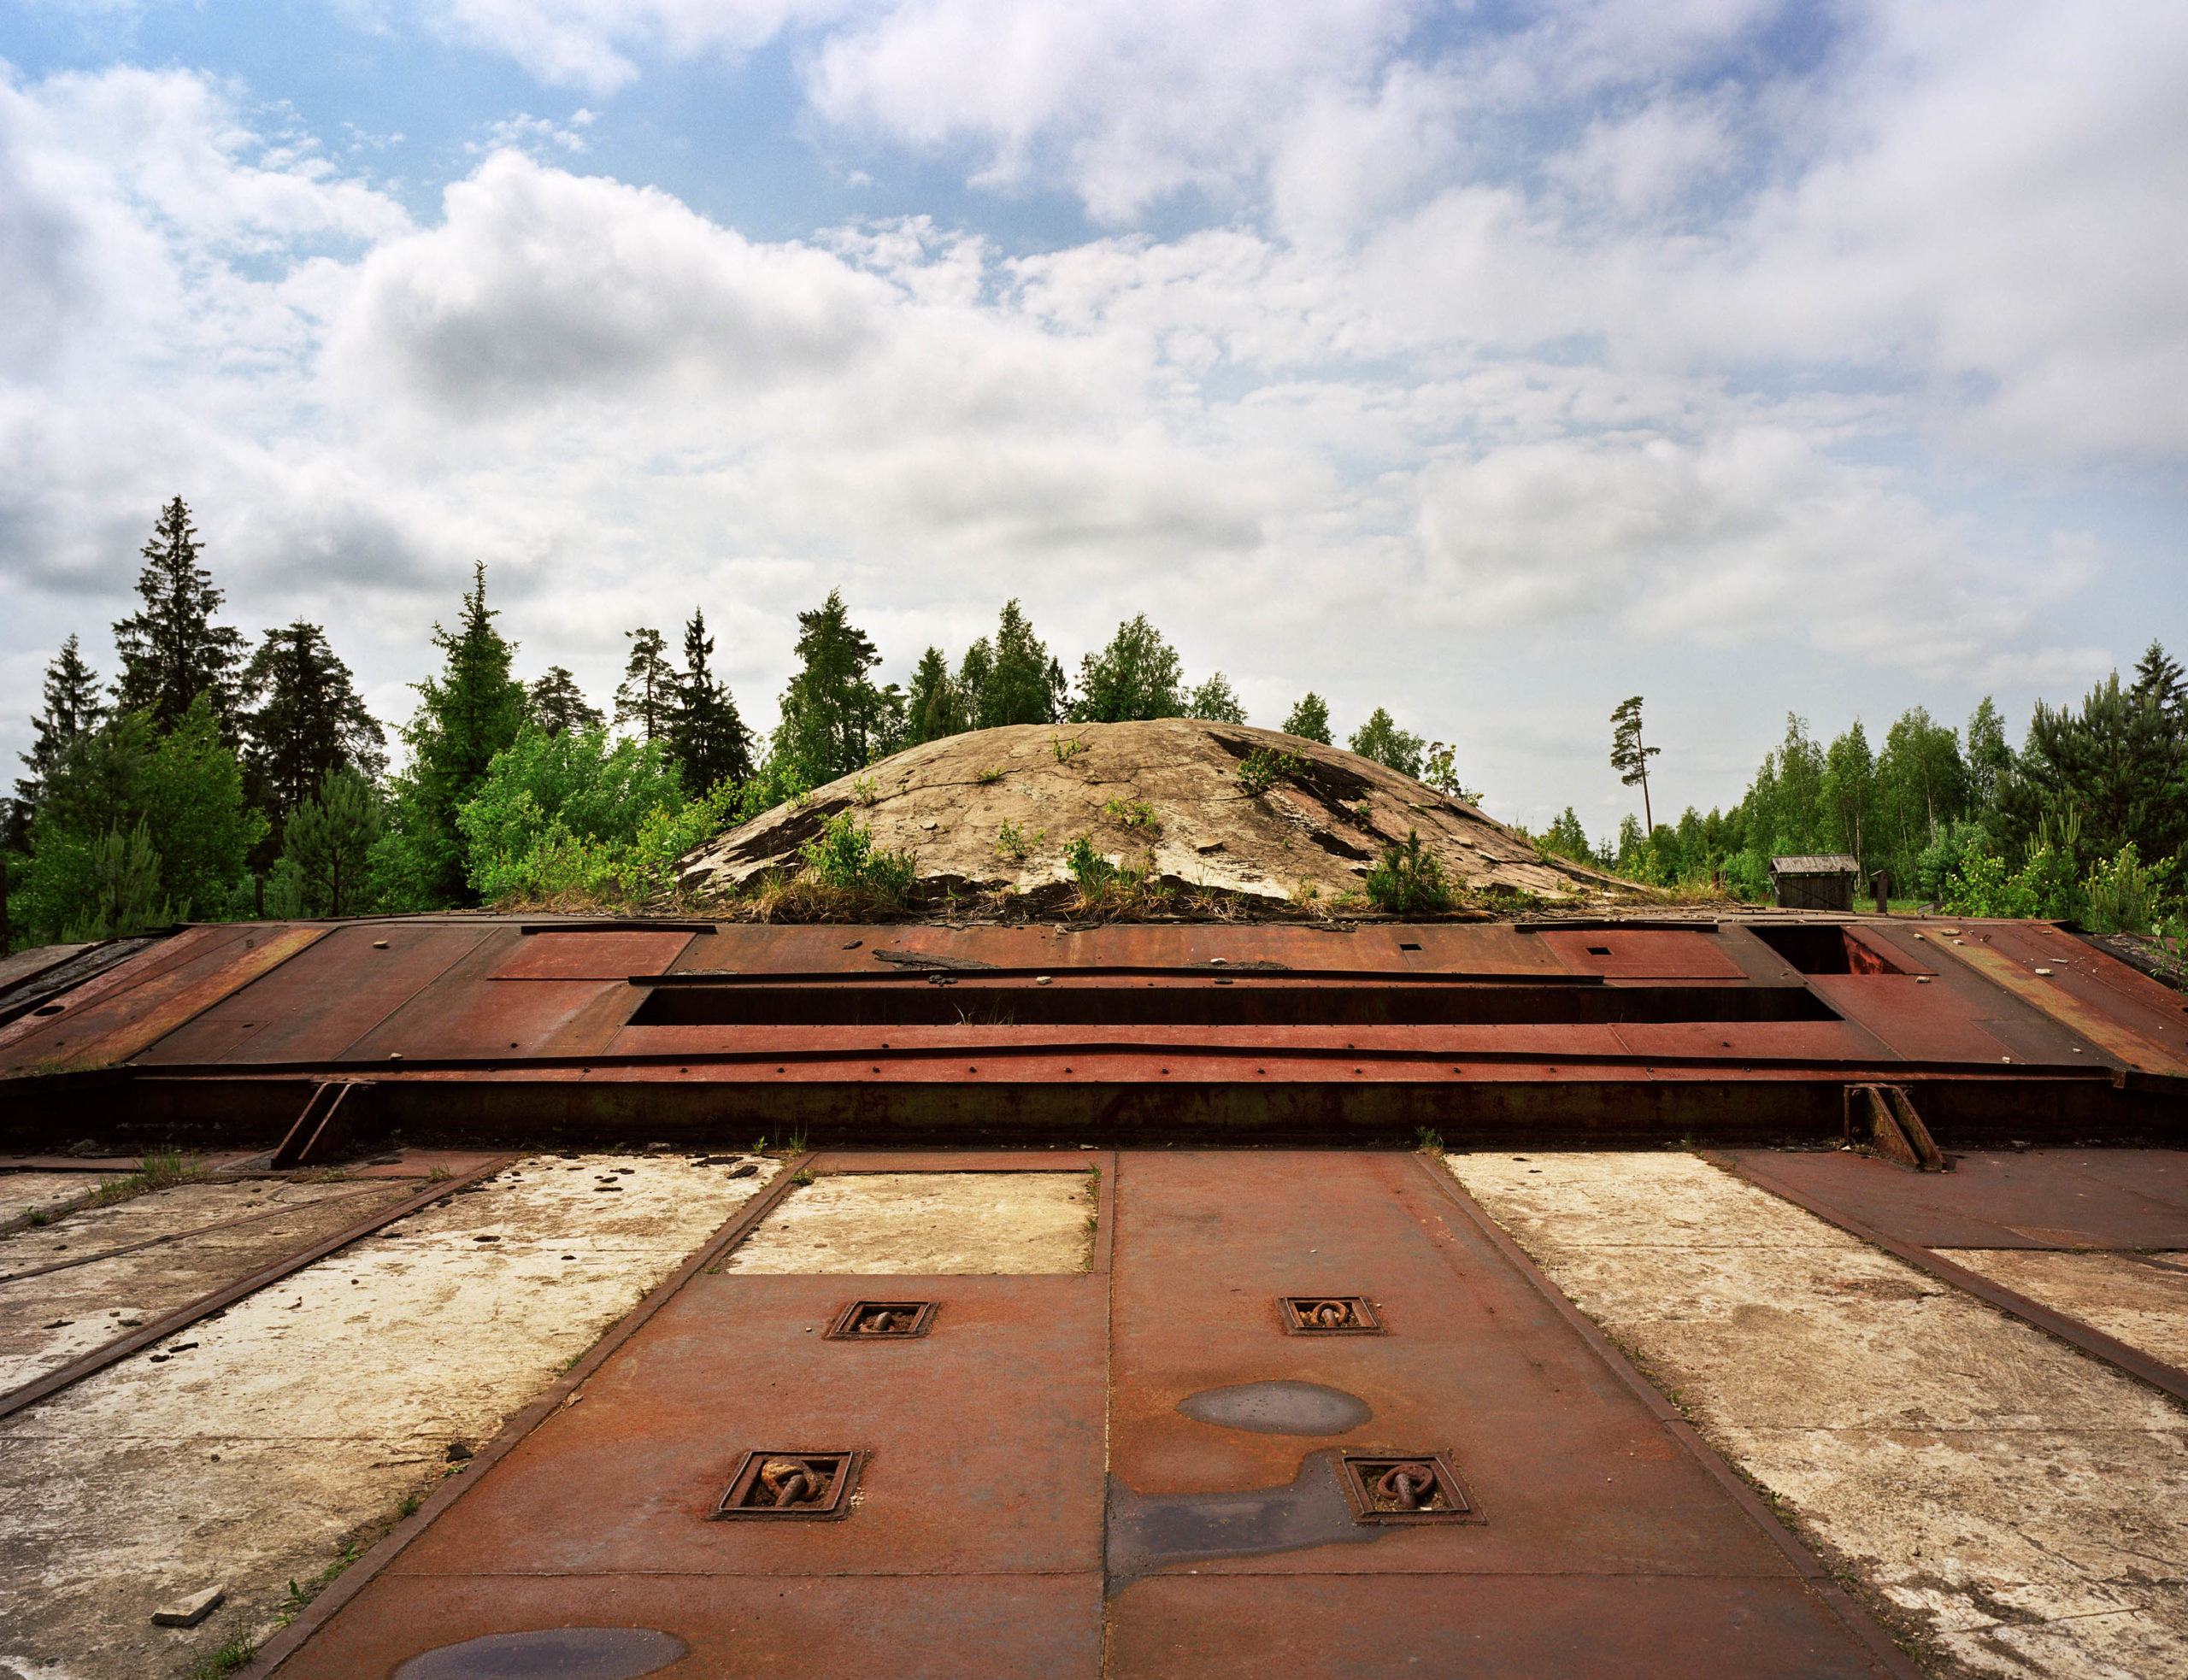 Lithuania. Soviet SS-4 missile base